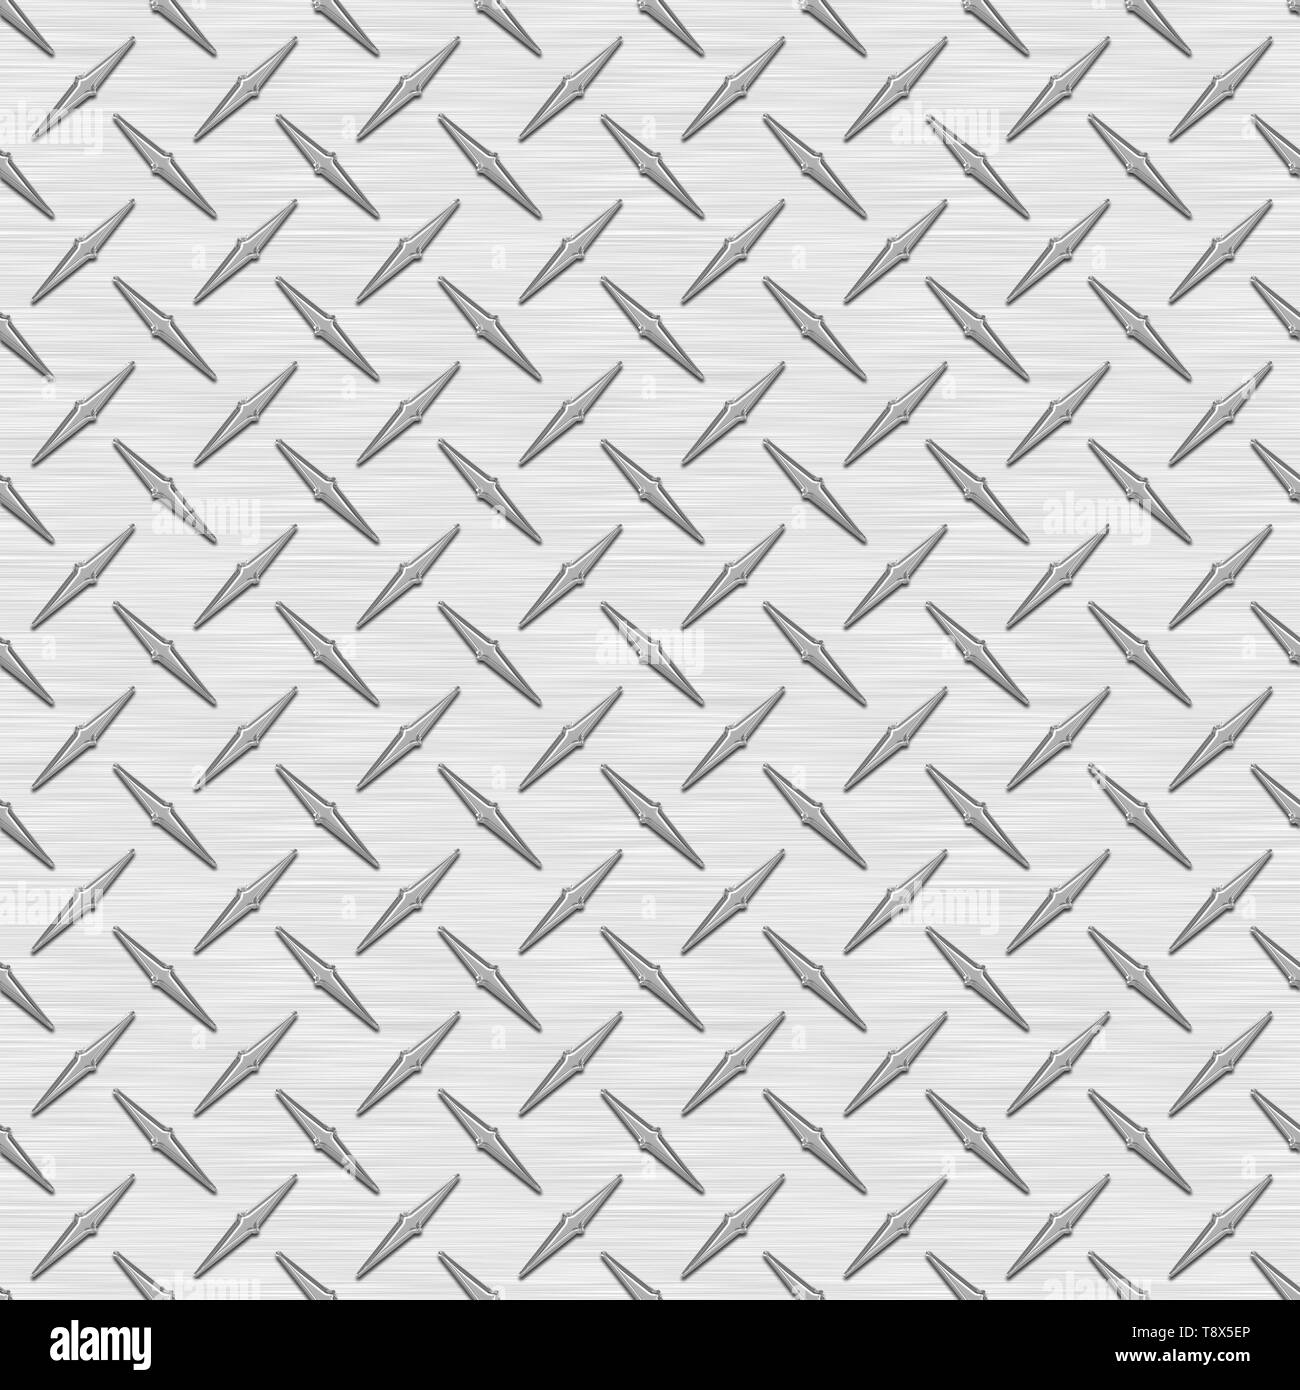 Silver Diamond Plate Metal Seamless Texture Tile - Stock Image